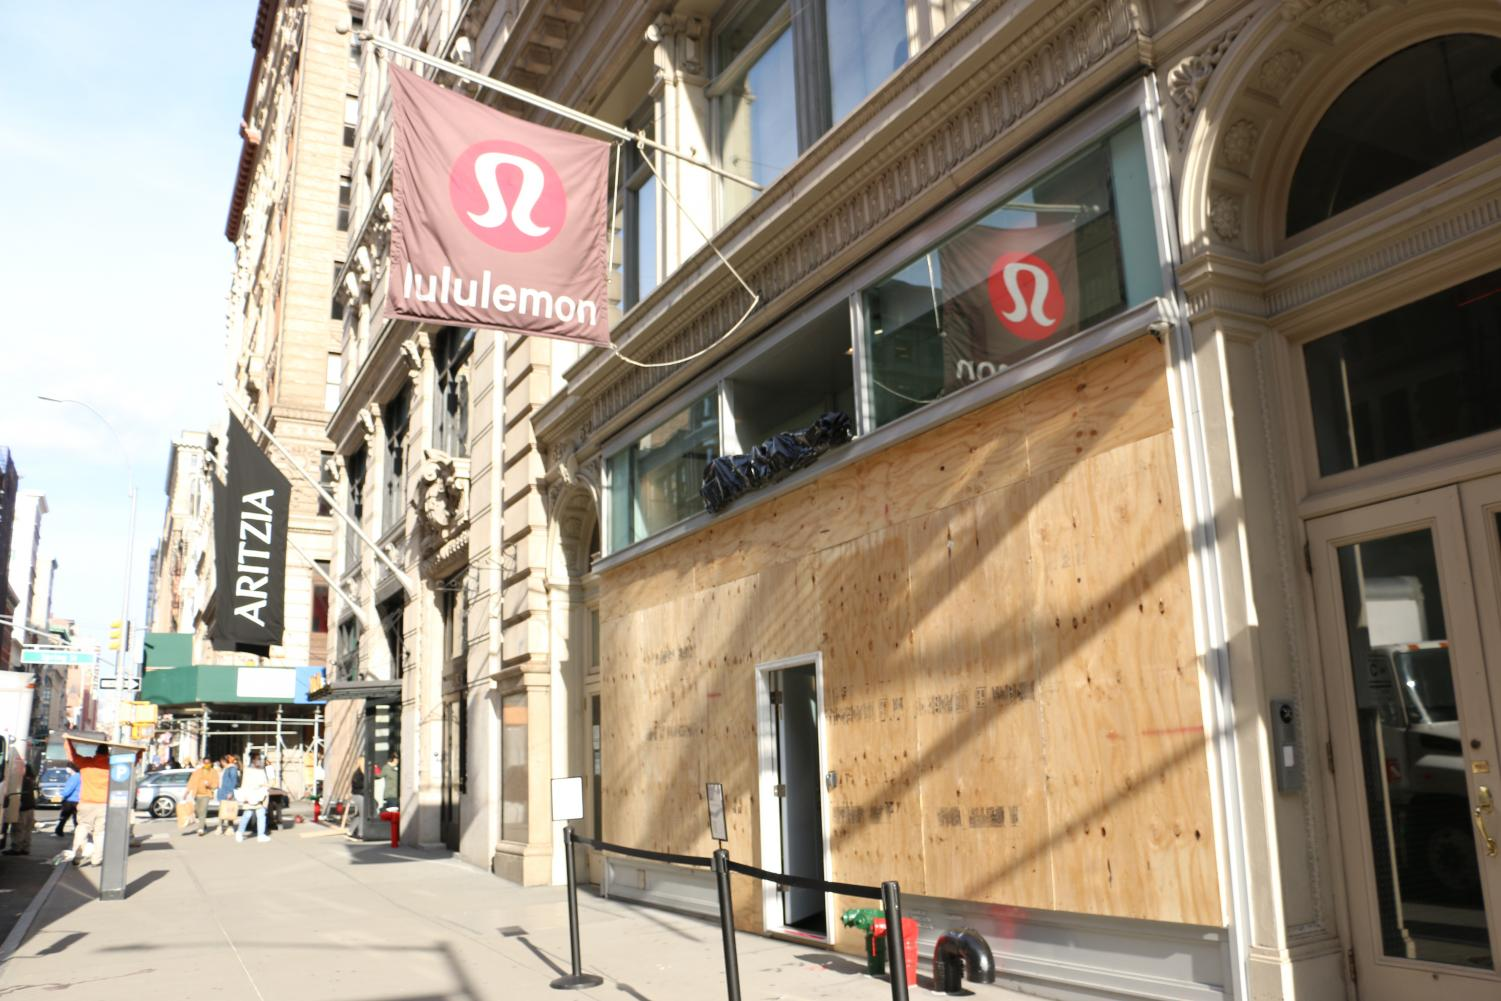 the Lululemon store boarded up